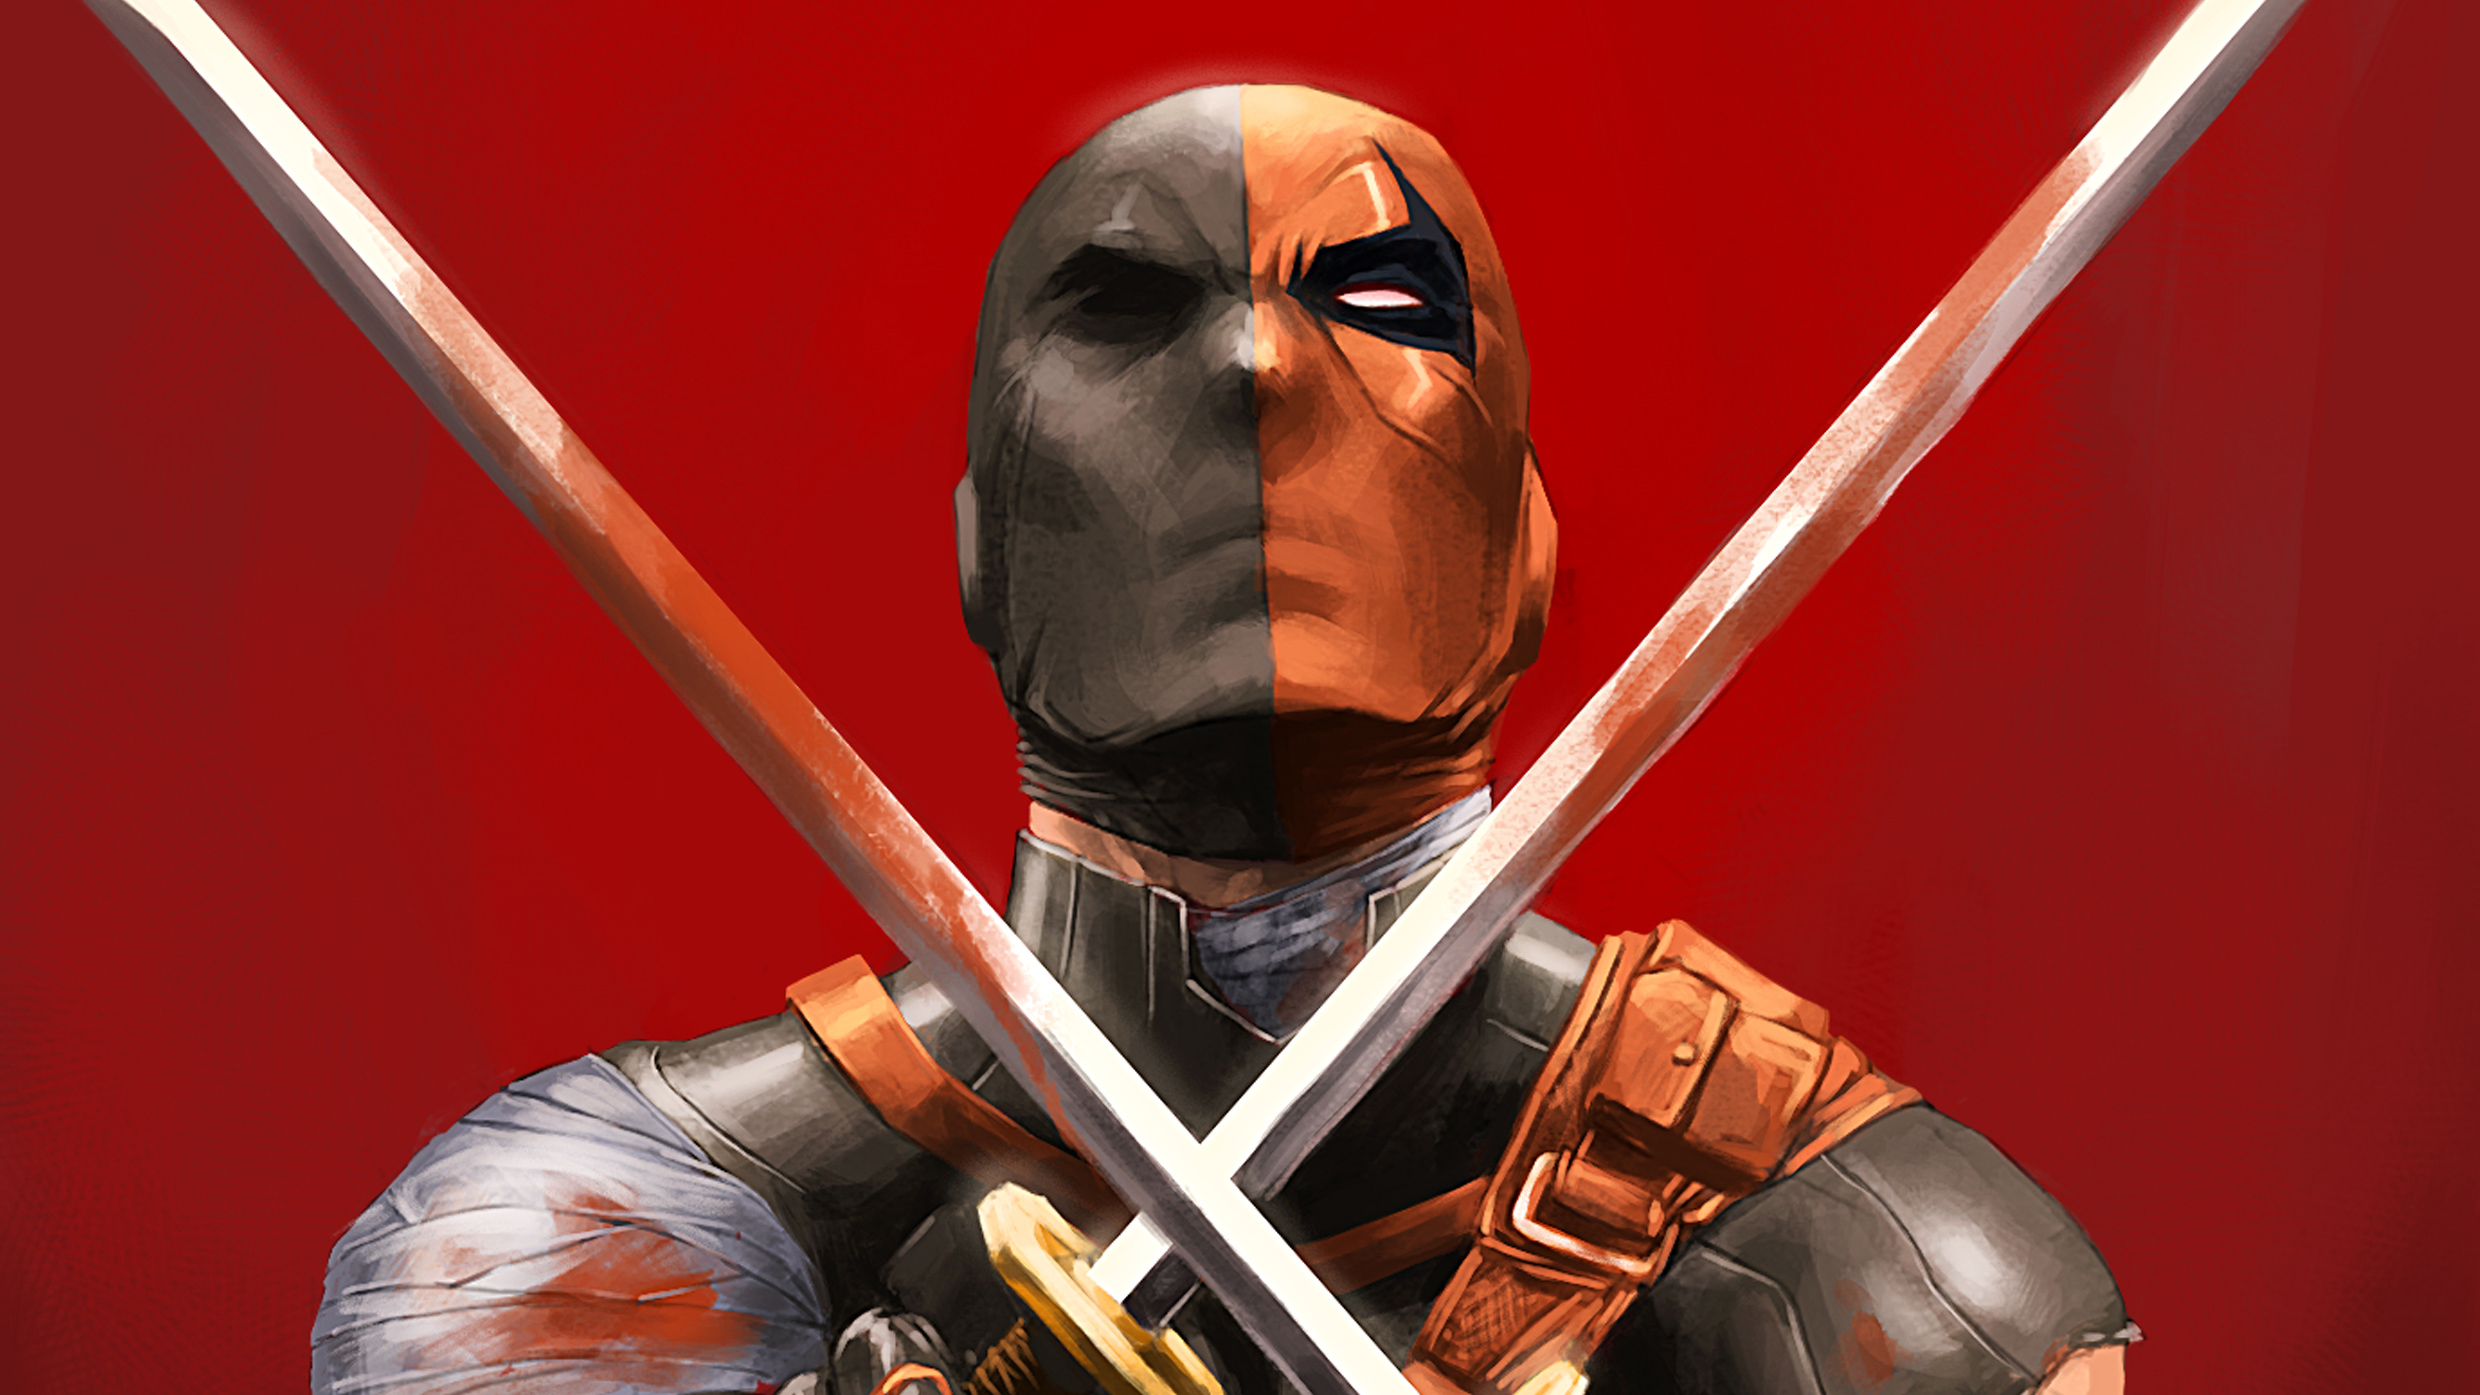 deathstroke with two swords 4k 1548527187 - Deathstroke With Two Swords 4k - supervillain wallpapers, superheroes wallpapers, hd-wallpapers, digital art wallpapers, deathstroke wallpapers, artwork wallpapers